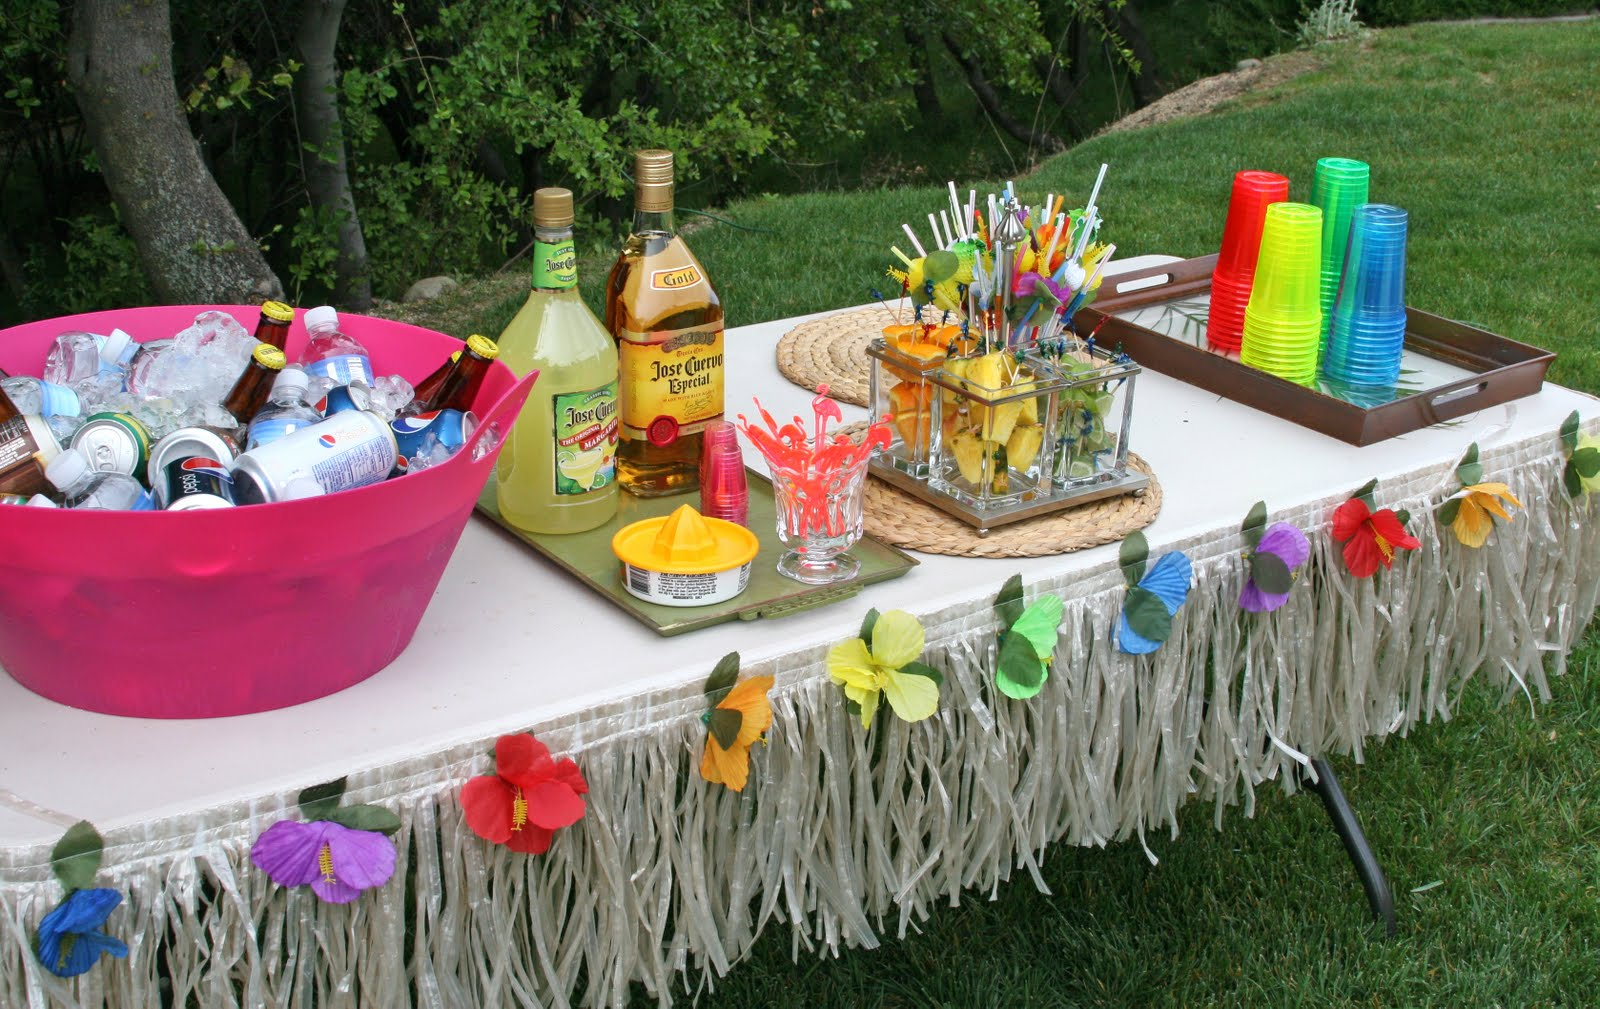 Glorious Treats Parties 30th Birthday Luau Party & Luau Party Decorations Ideas - Elitflat